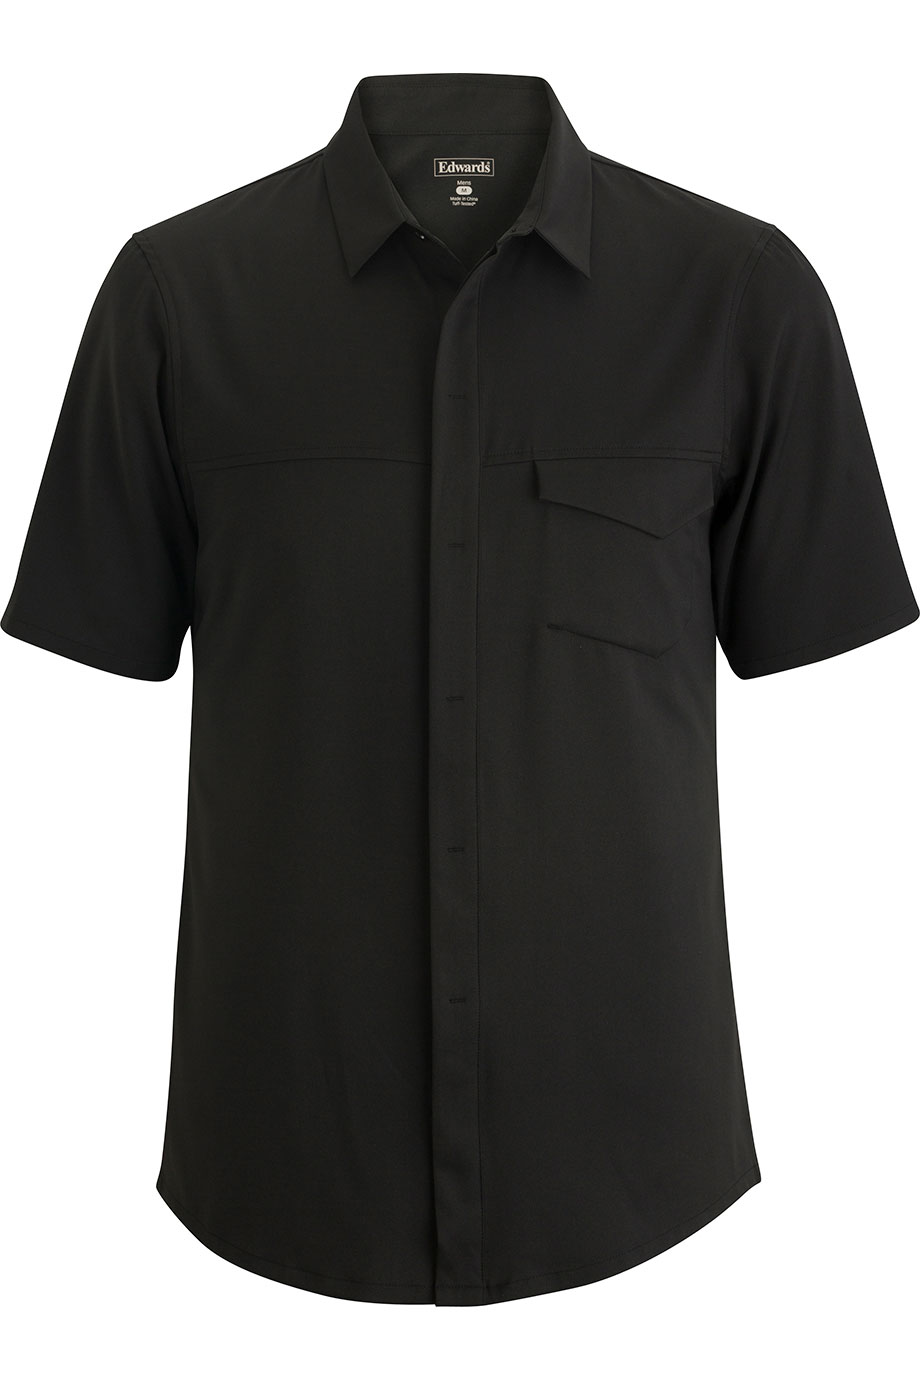 Edwards Mens Service Shirt